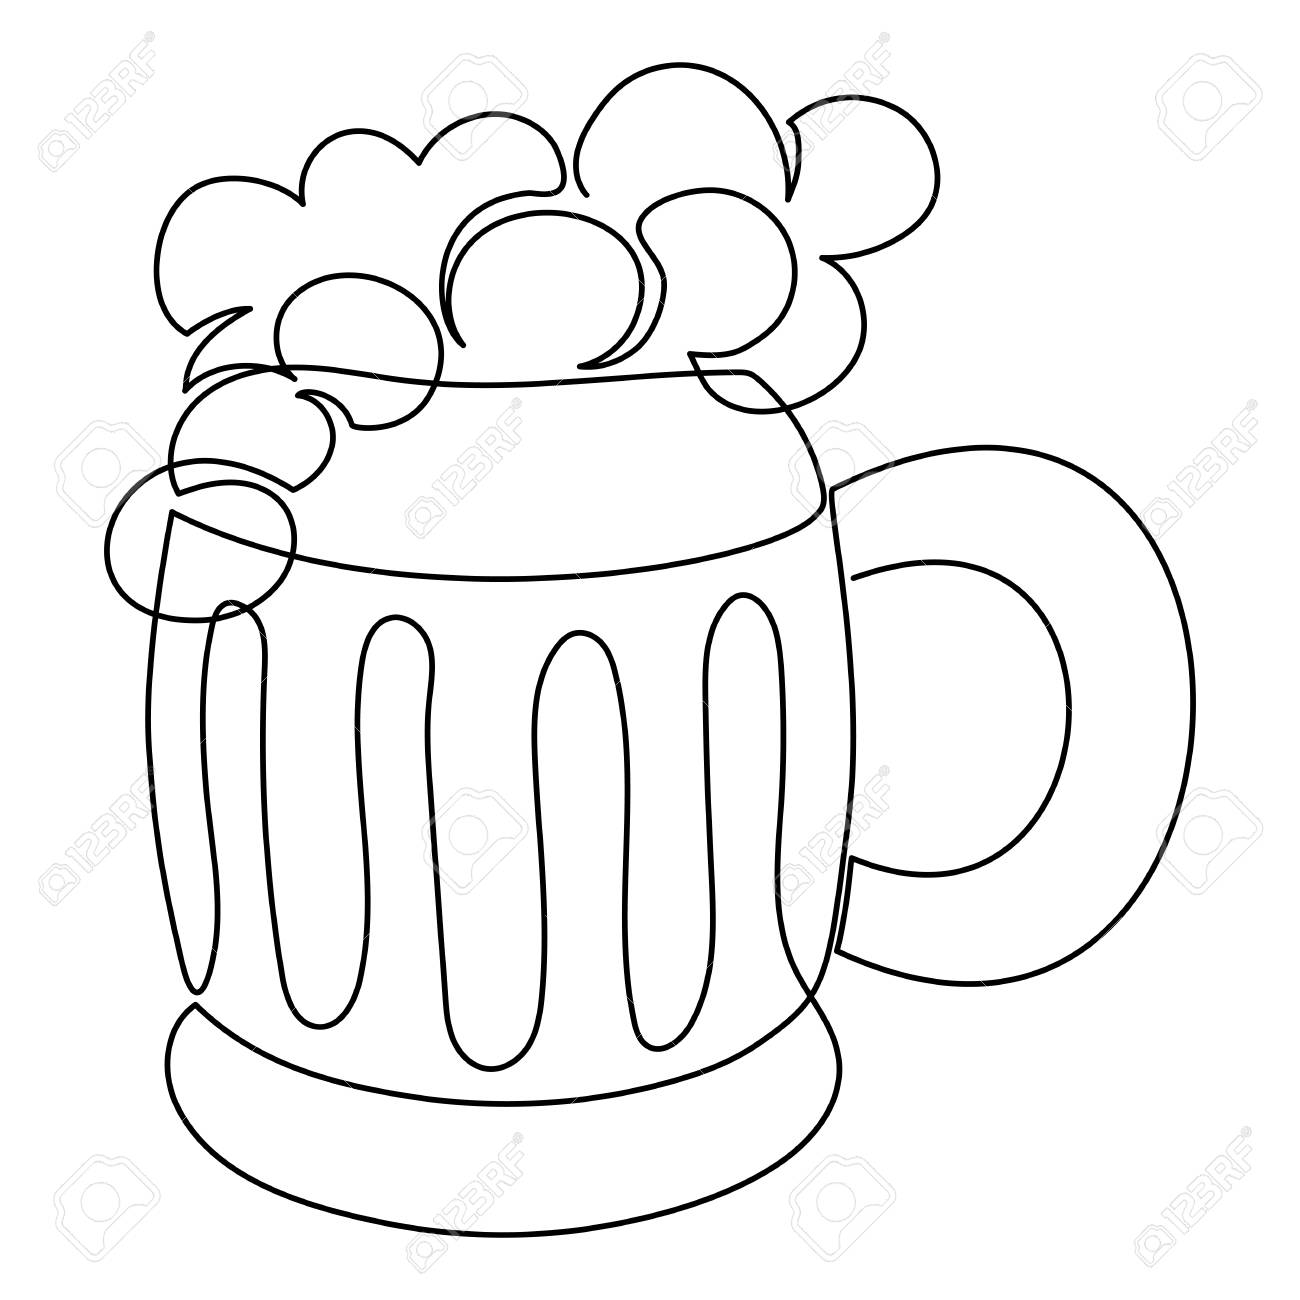 One Line Drawing Continuous Line Art Beer Or Ale Mug Hand Royalty Free Cliparts Vectors And Stock Illustration Image 117335502